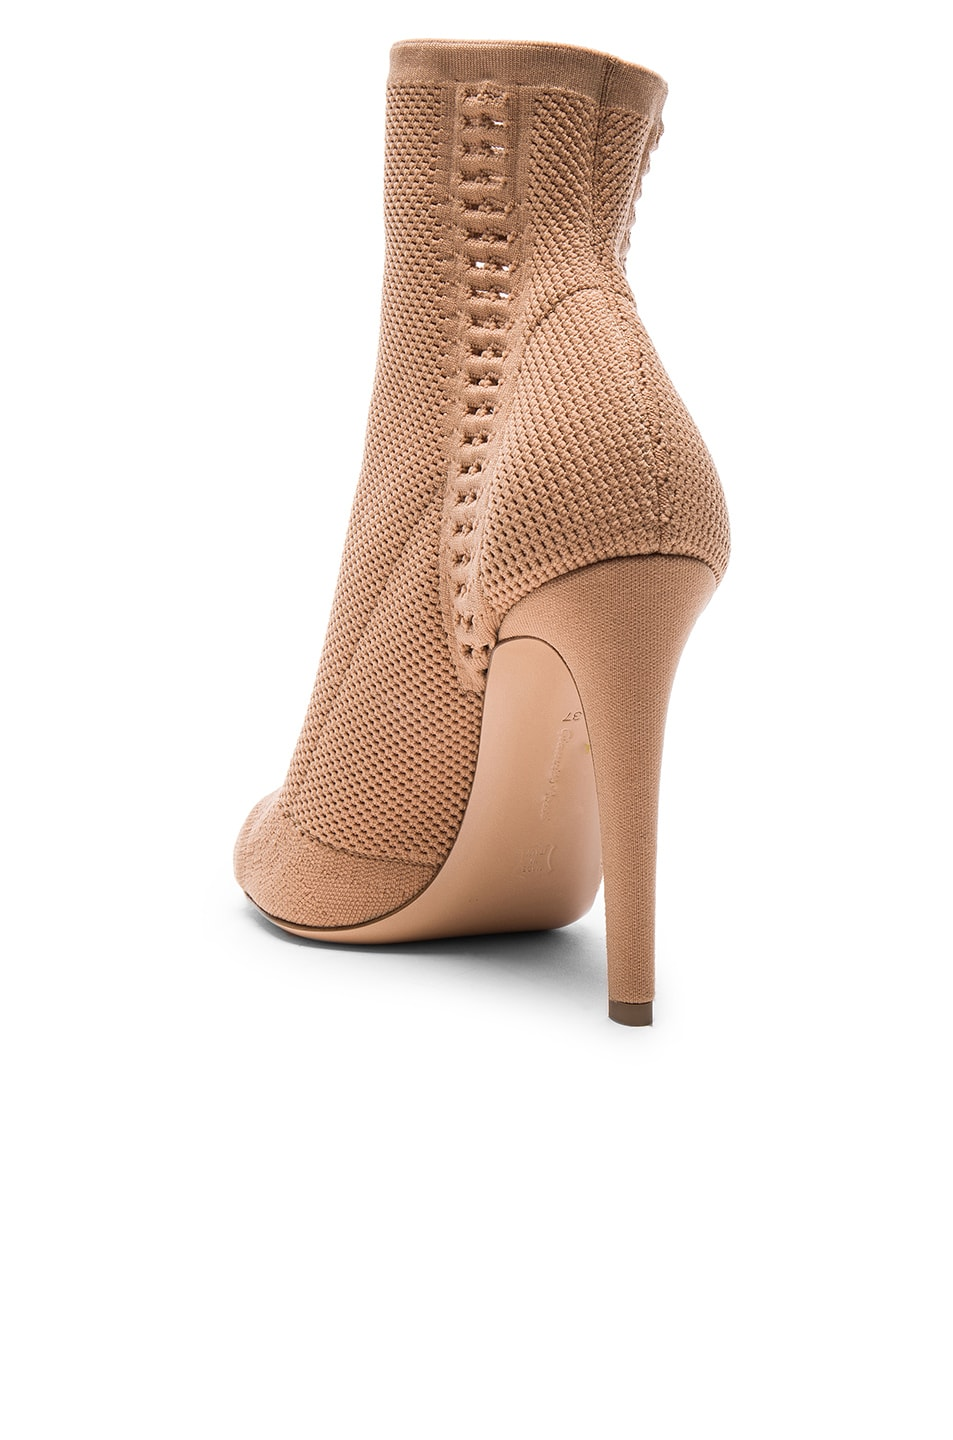 Image 3 of Gianvito Rossi Knit Vires Booties in Praline